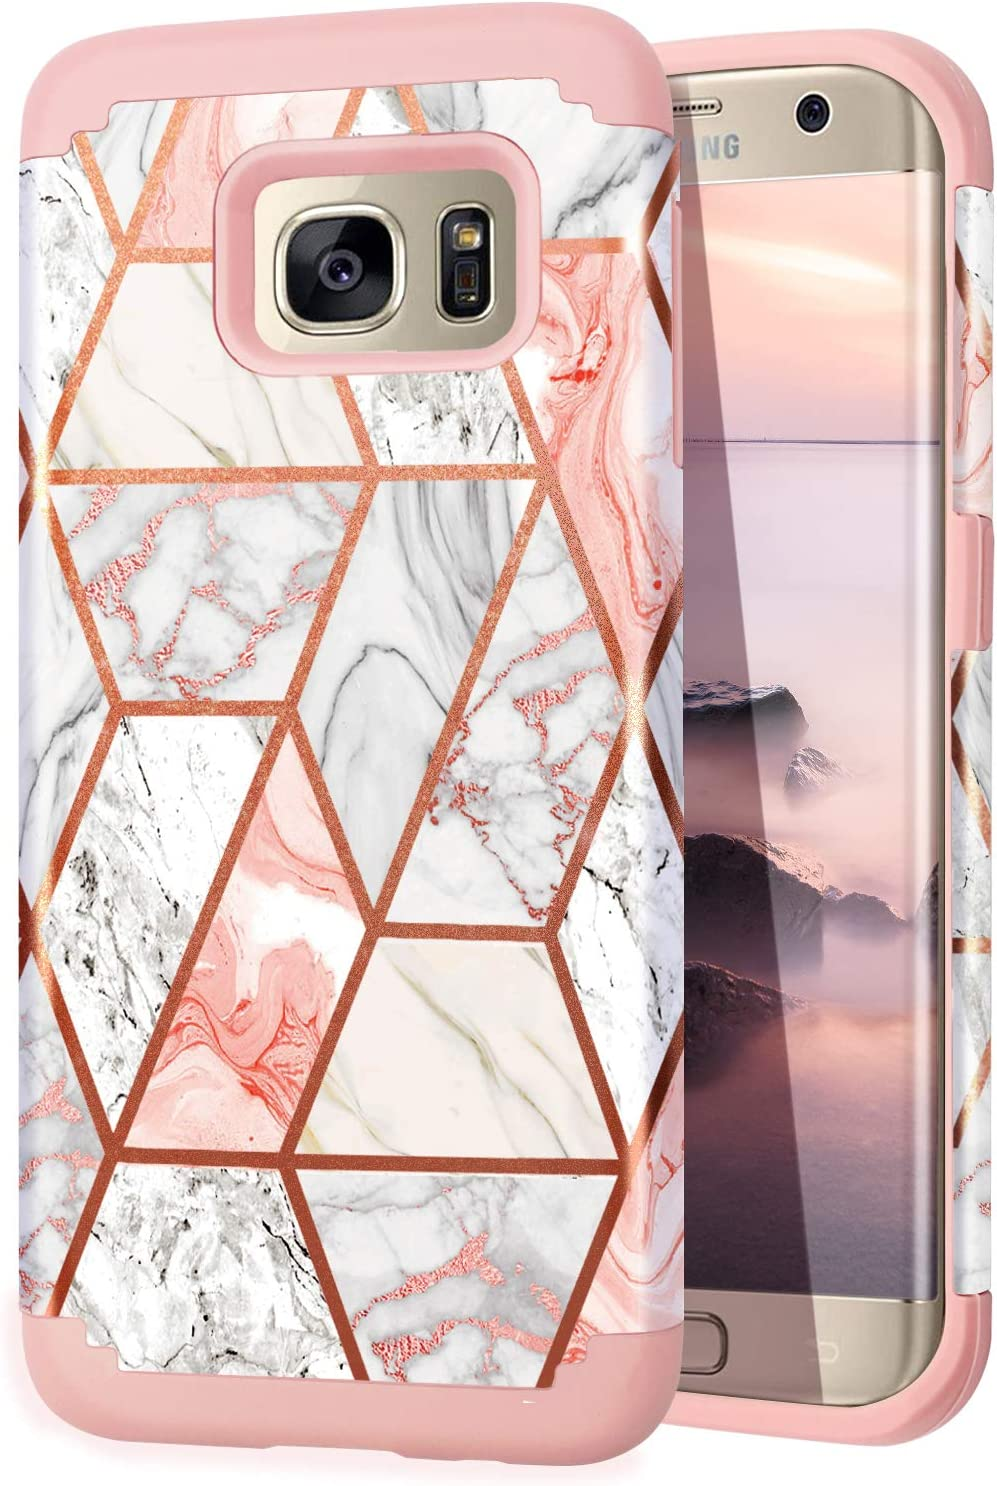 Fingic Galaxy S6 Edge case, Samsung S6 Edge case, Rose Gold Marble Design Shiny Glitter Bumper Hybrid Hard PC Soft Rubber Anti-Scratch Shockproof Protective Cases Cover for Samsung Galaxy S6 Edge 2015